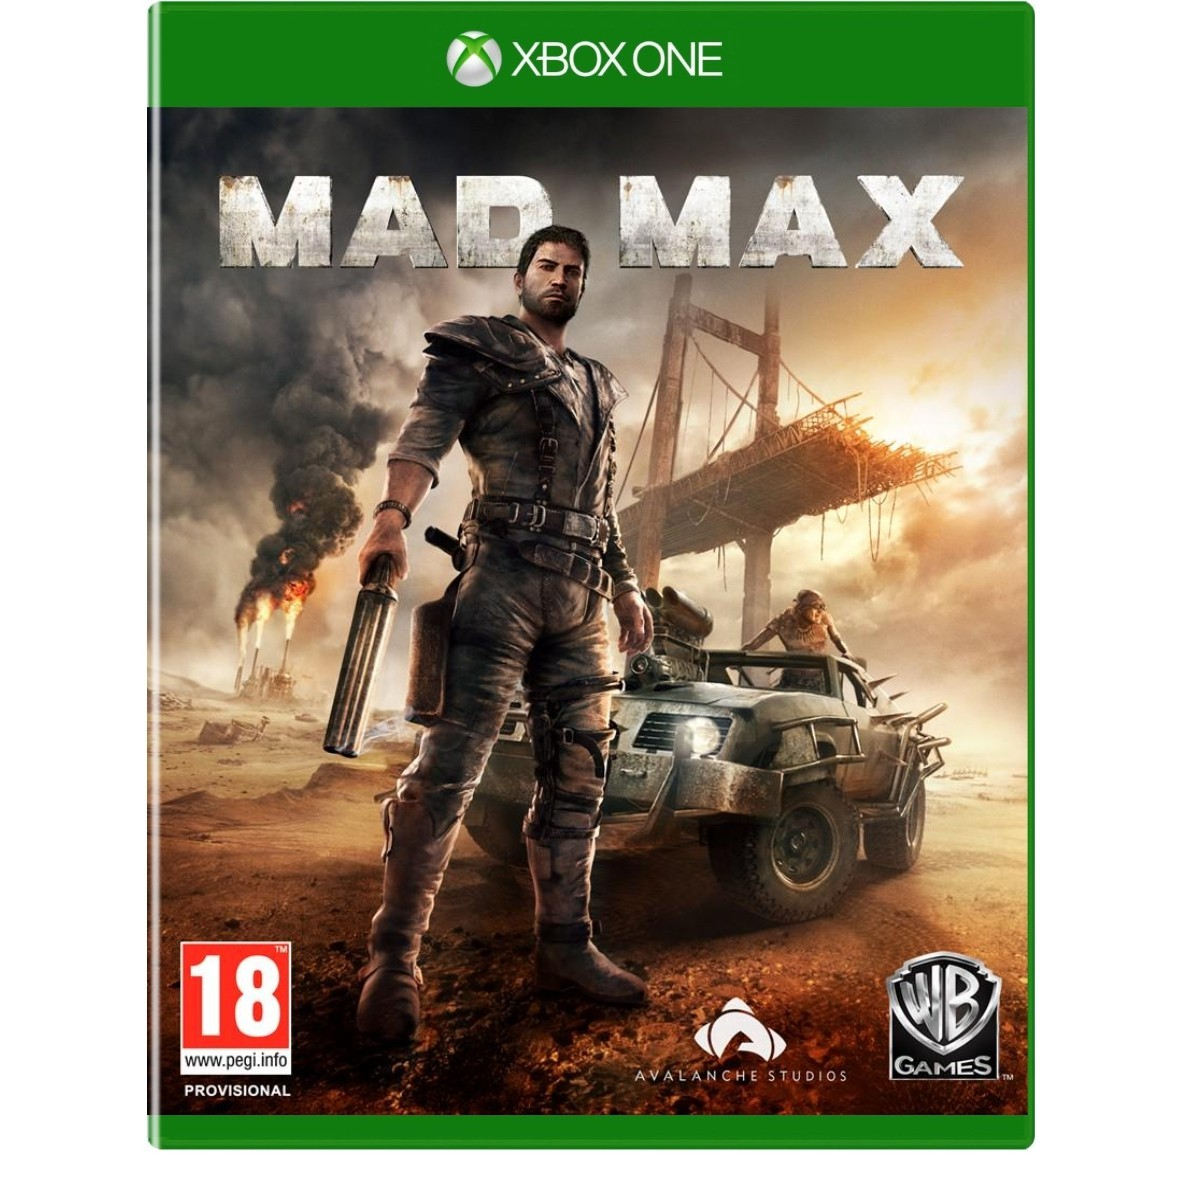 Game: Mad Max - Xbox One